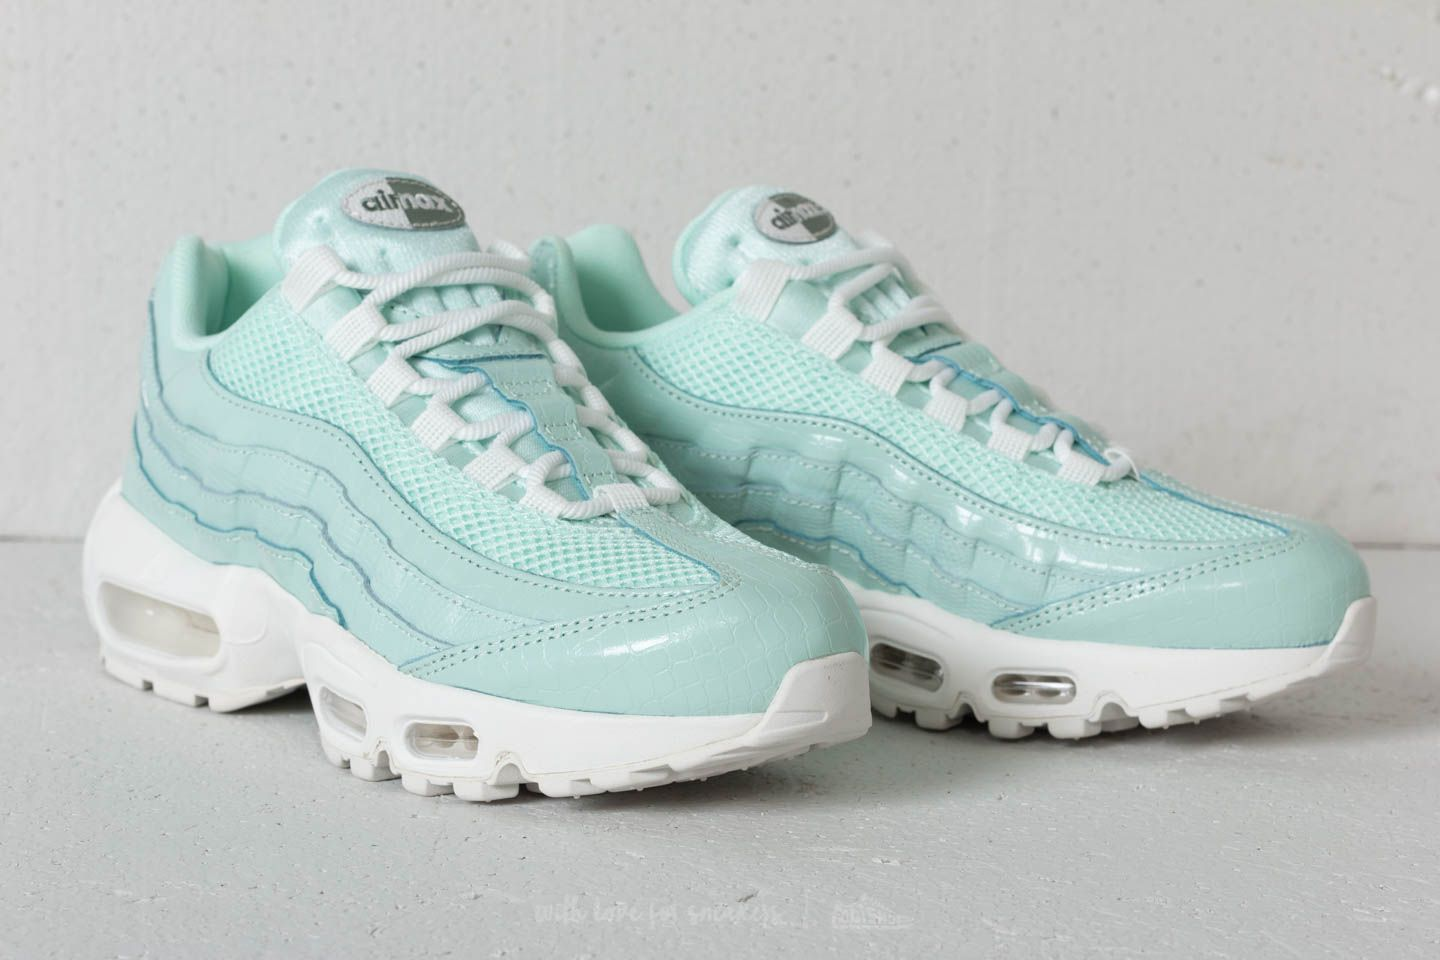 esta noche Caso dañar  Men's shoes Nike Wmns Air Max 95 PRM Igloo / Igloo-Summit White